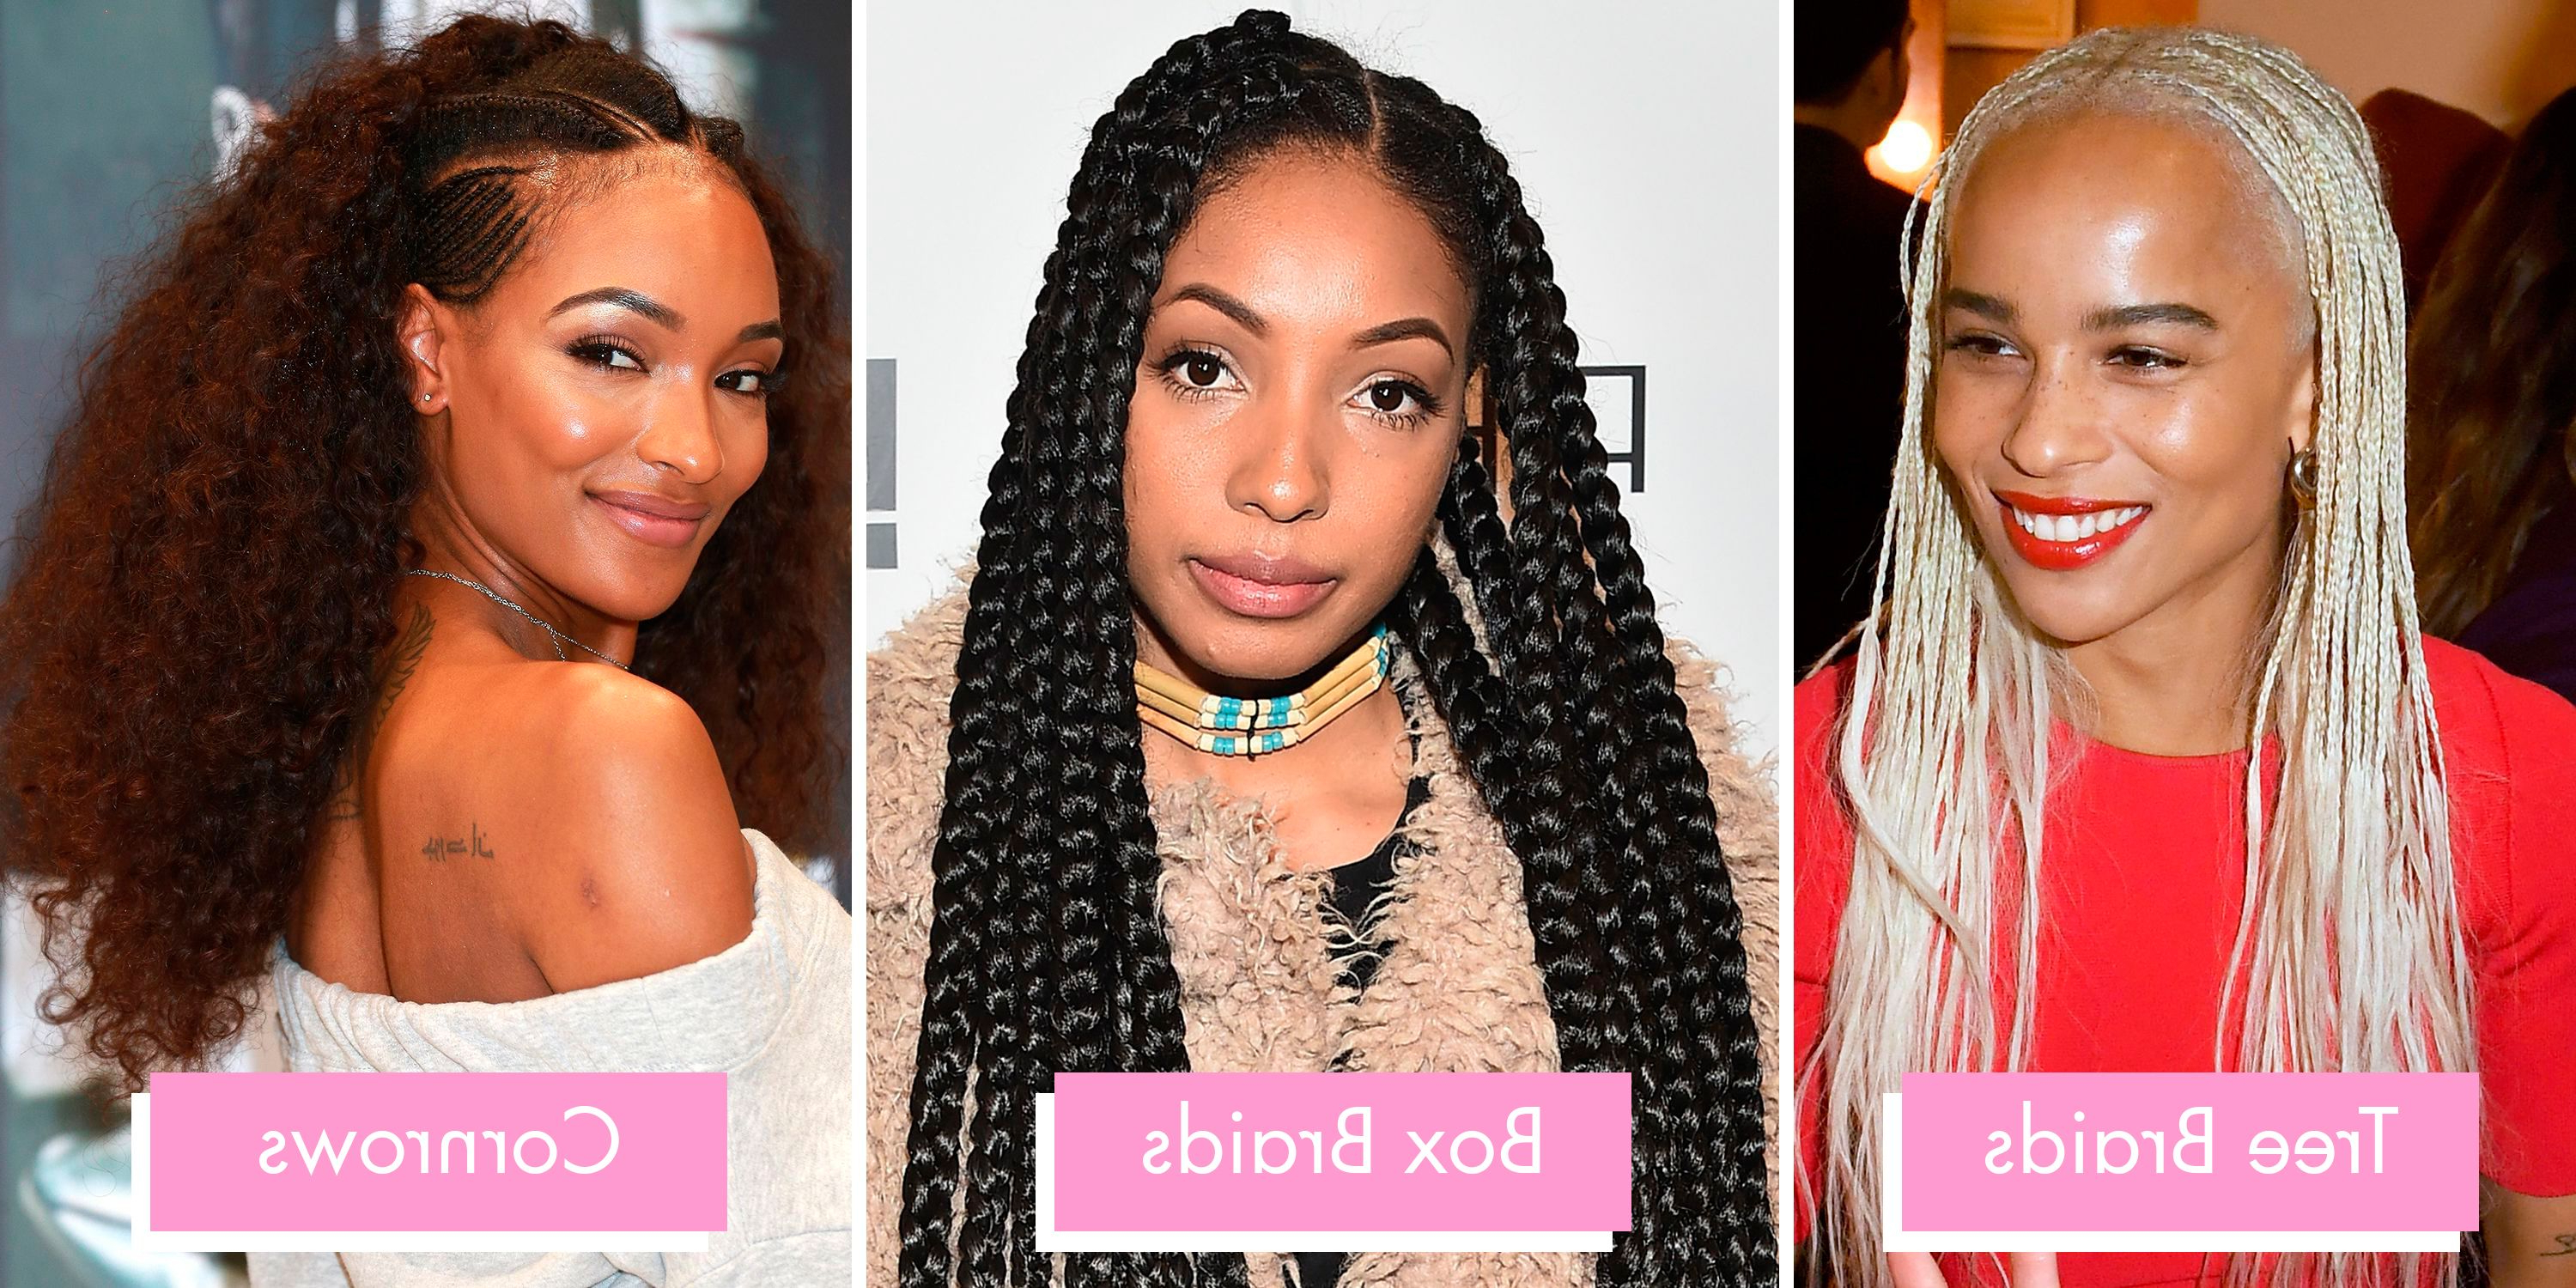 Newest Loose Twist Hairstyles With Hair Wrap With Braids And Twists 2019 – 14 Hairstyles From Crochet And Box (View 16 of 20)